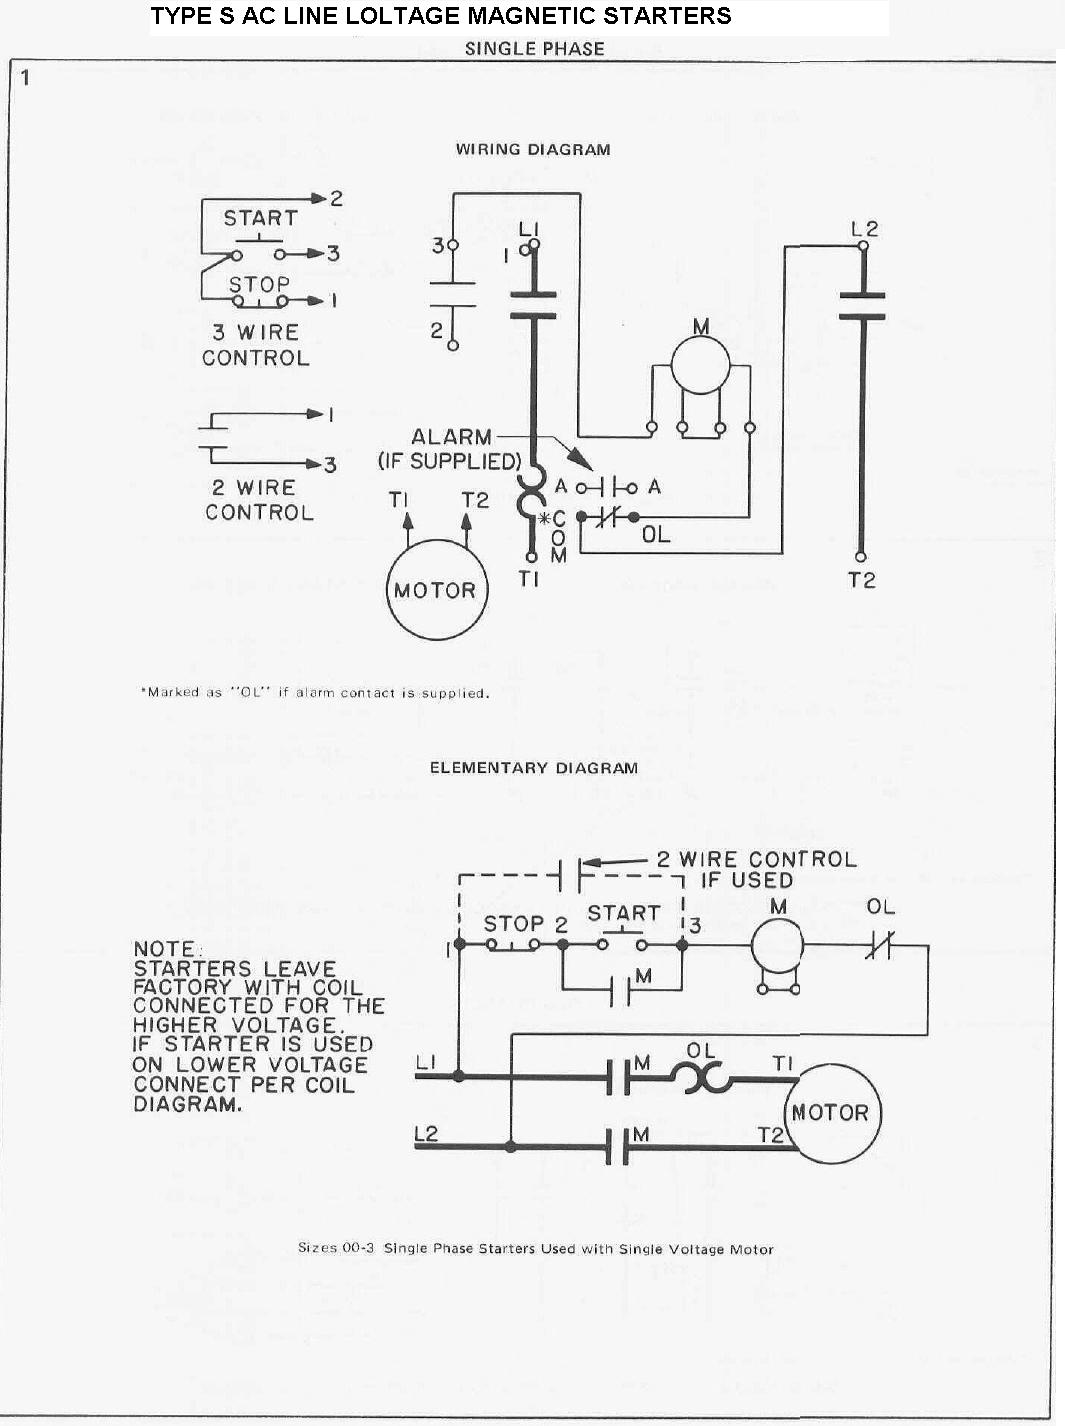 Wiring Westinghouse Motor Type Fz Block And Schematic Diagrams Electric Motors Diagram 1 4 Hp Yamaha Fz16 16 Modificadas